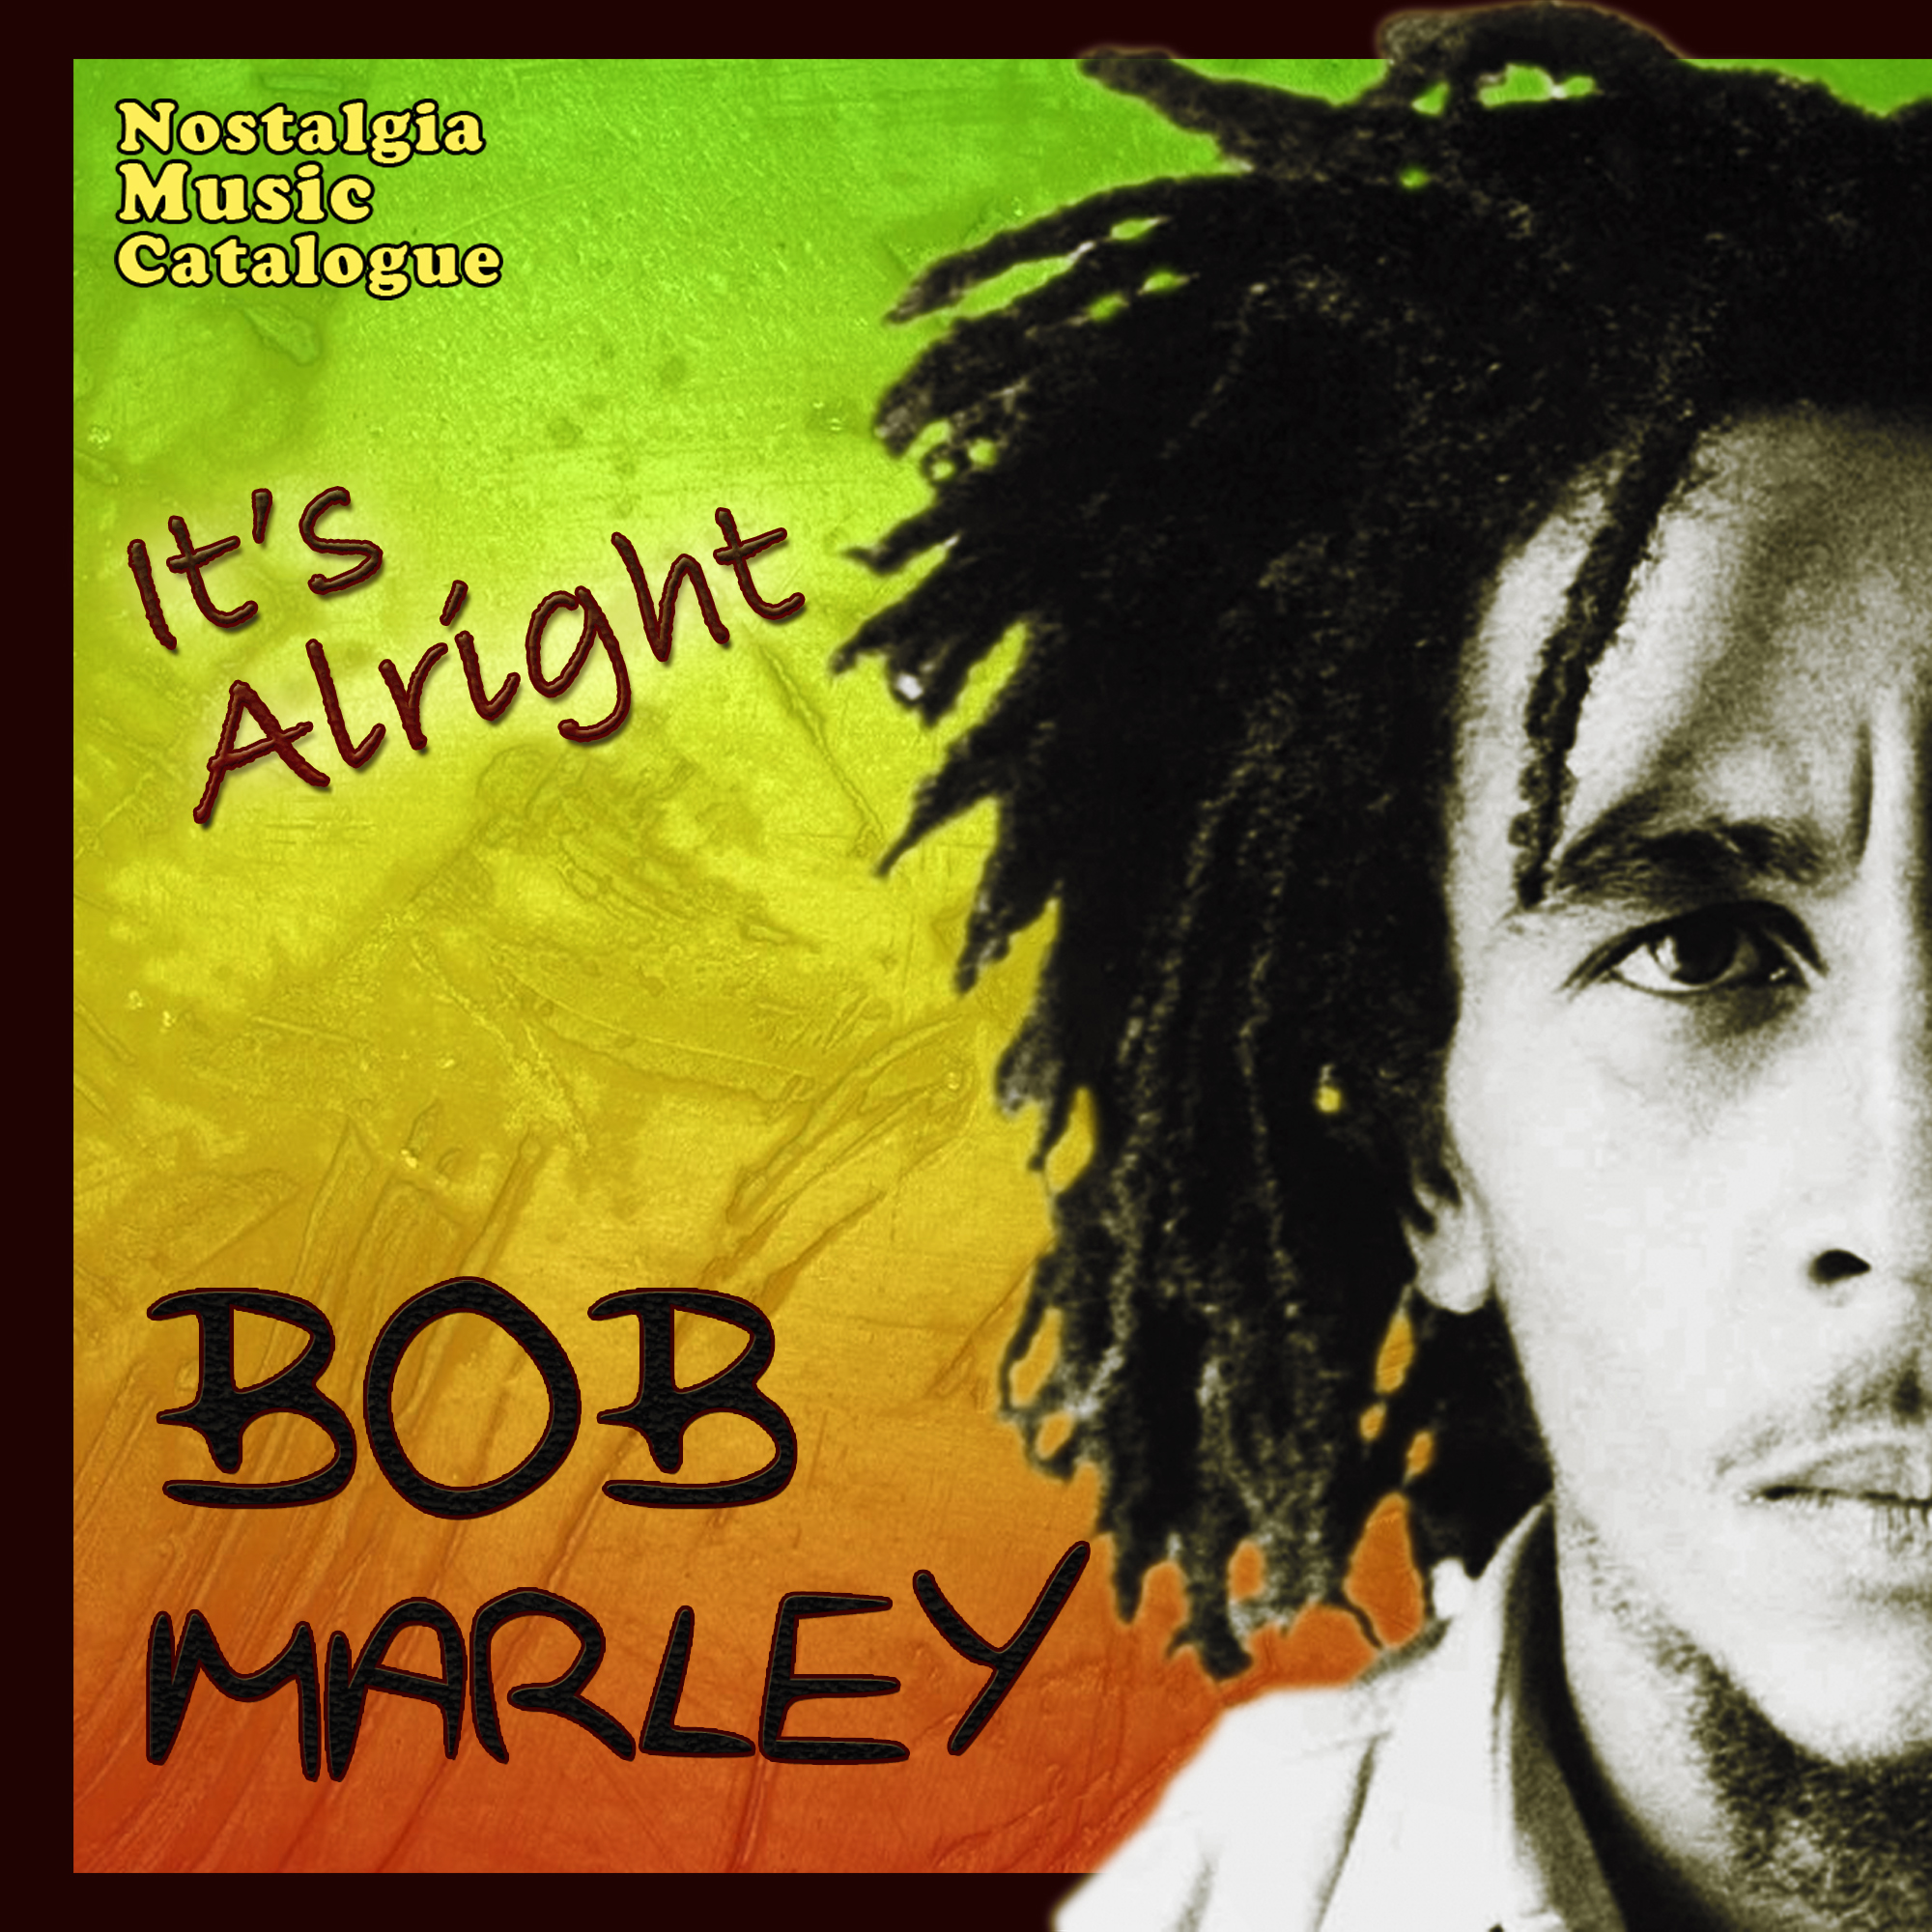 bob marley it's alright - Nostalgia Music Catalogue